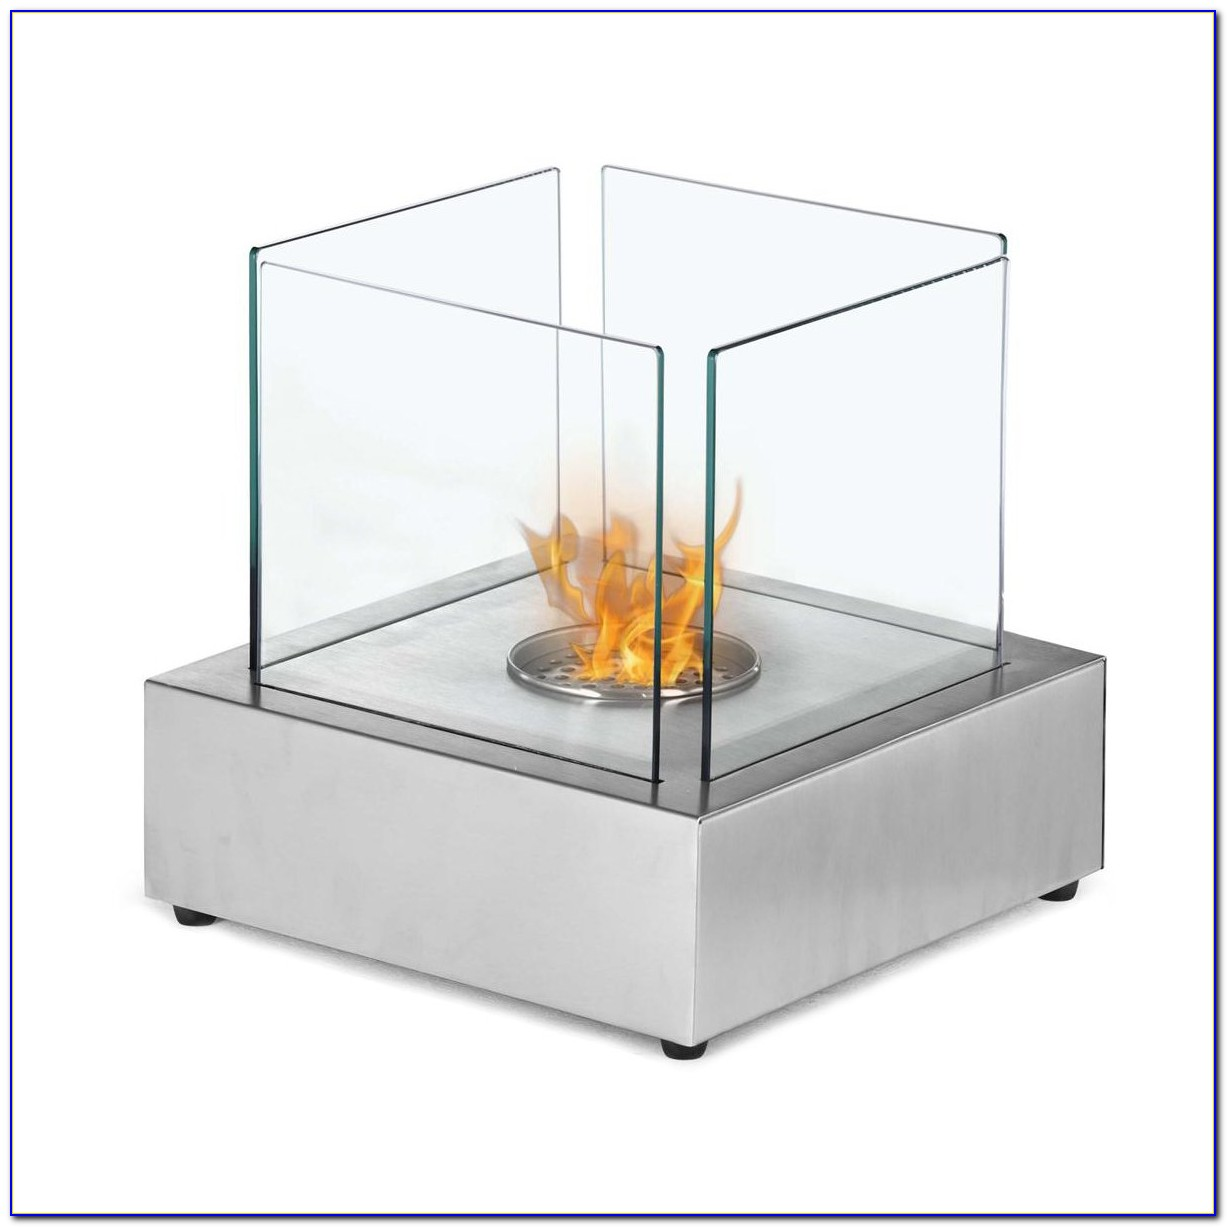 Ethanol Tabletop Fireplace Toronto